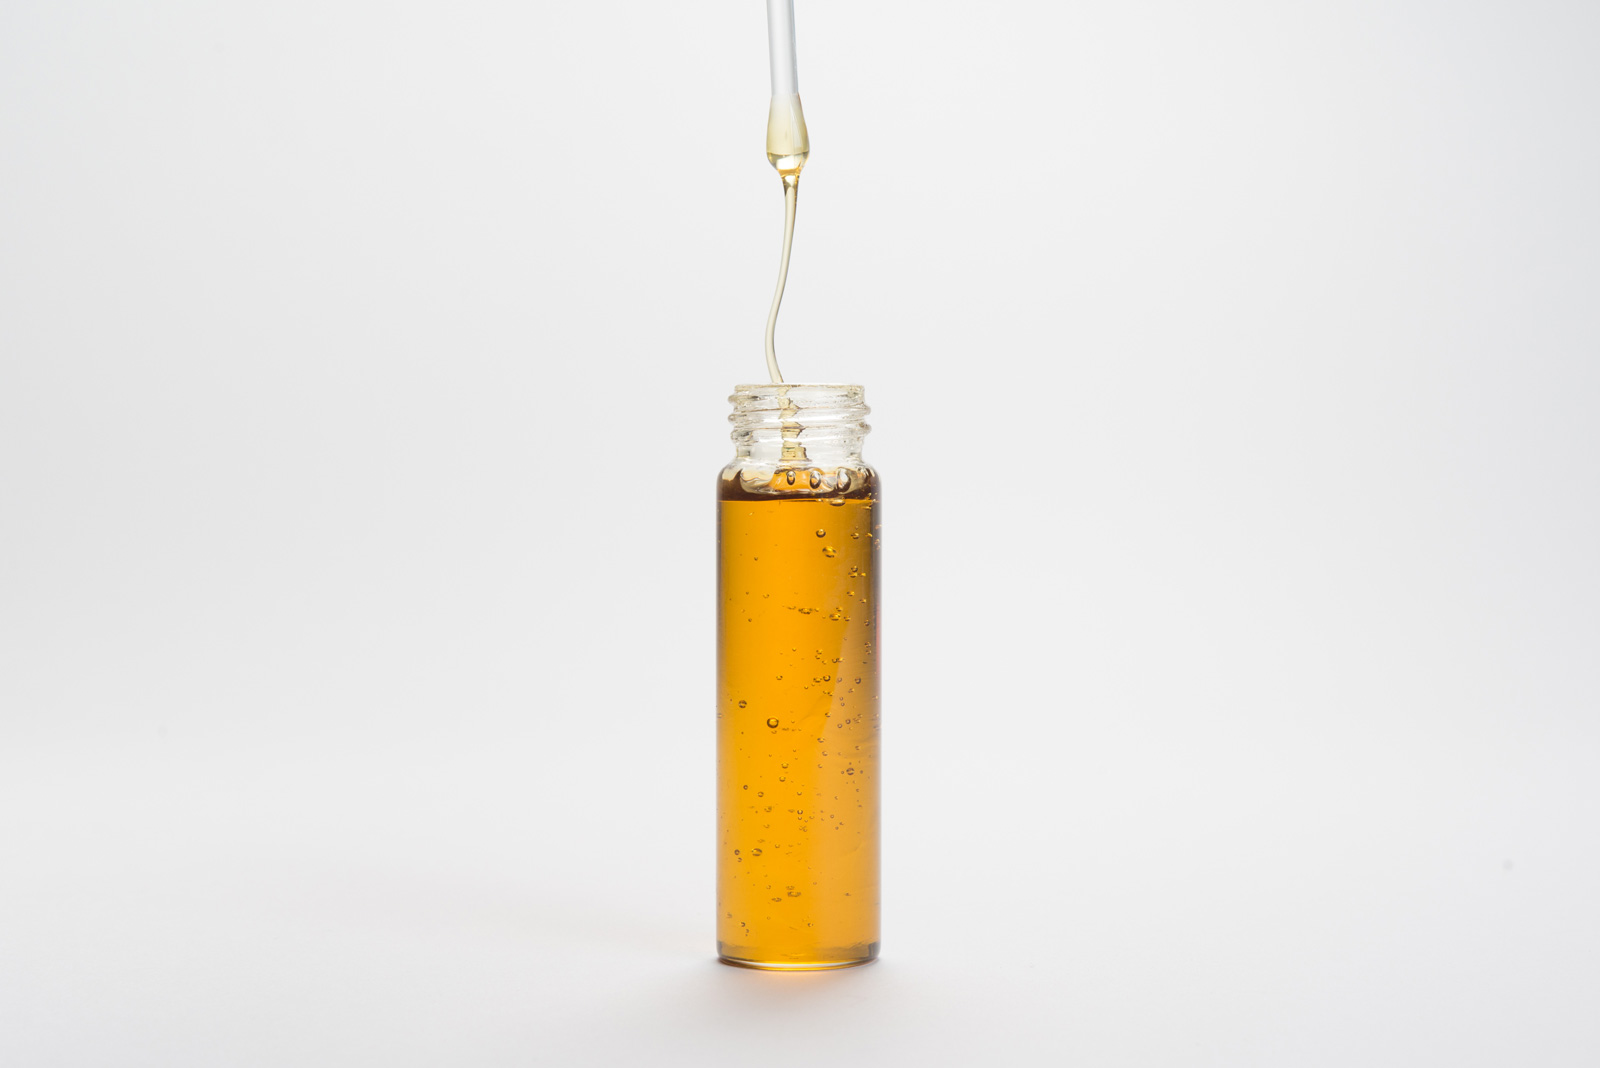 naked_extracts_03.jpg